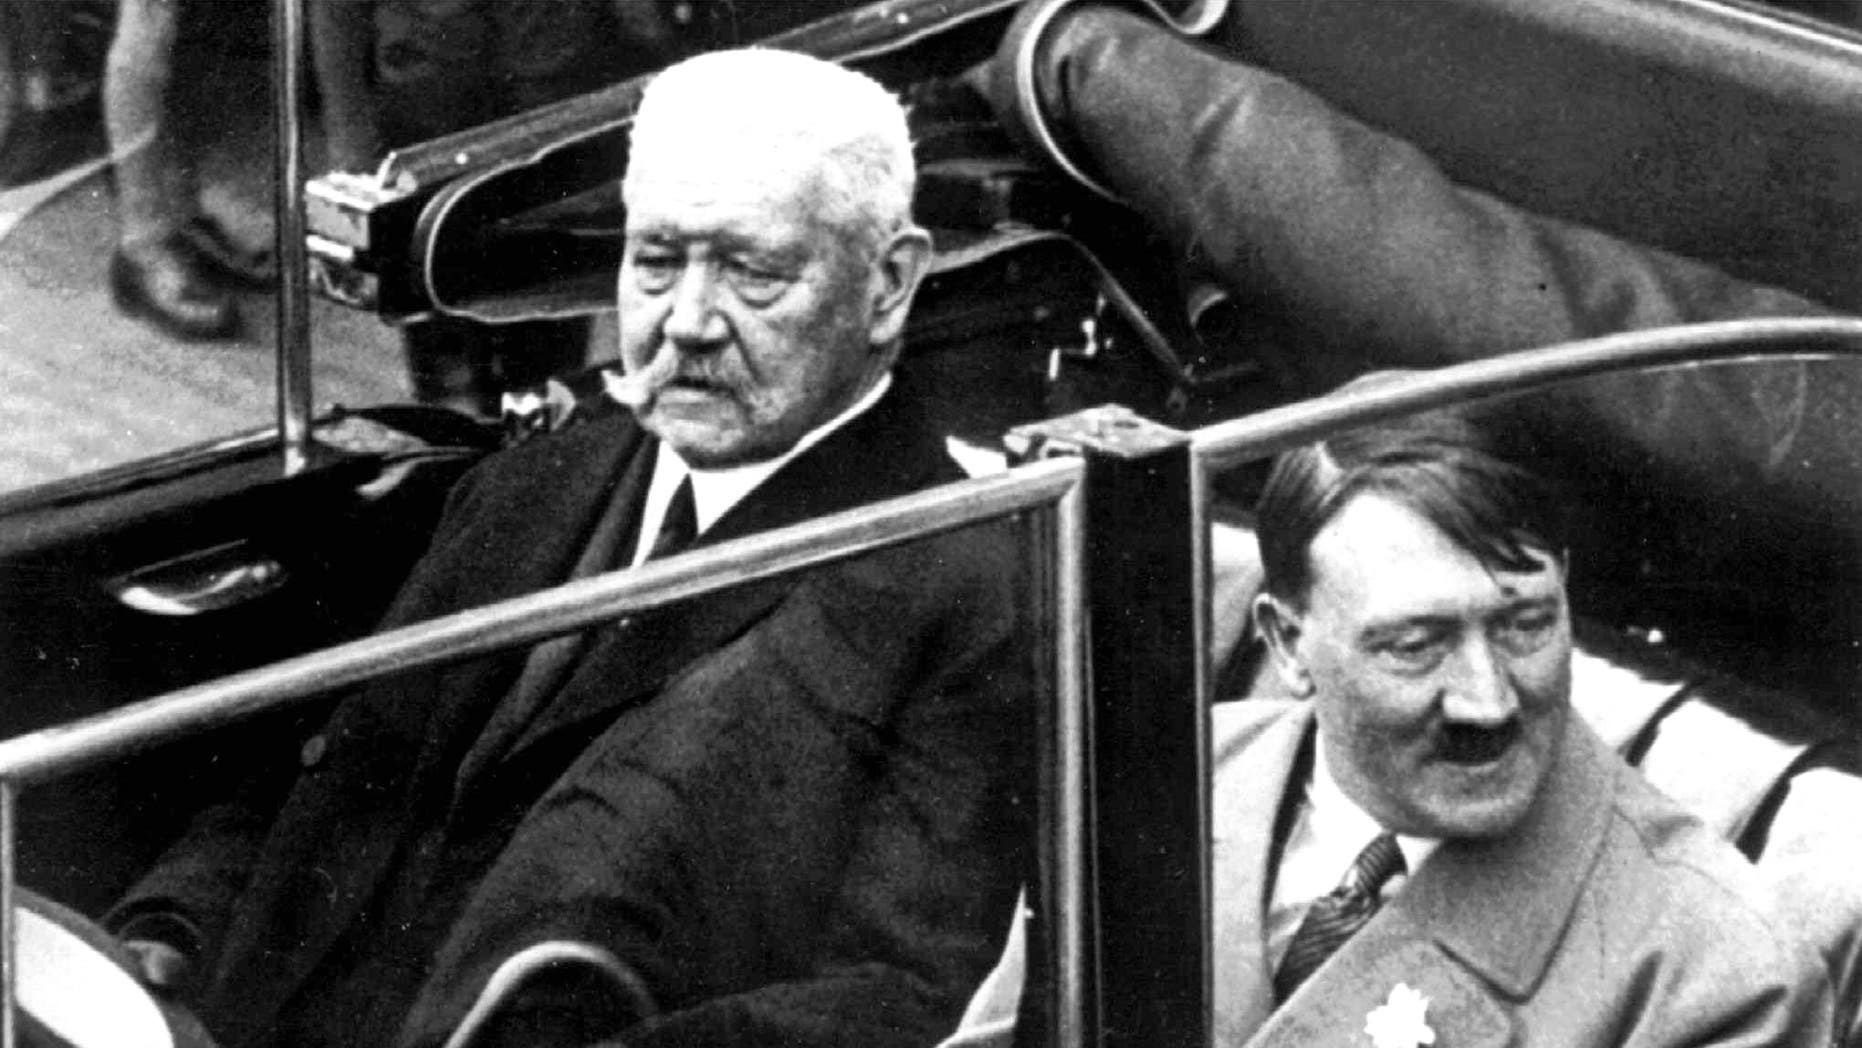 FILE  May 1, 1933 file photo shows German President Paul von Hindenburg, left, and Adolf Hitler, right, in a car  during a labor day celebration in Berlin. A Bavarian town has voted to strip Adolf Hitler of honorary citizenship bestowed upon him 80-years ago after an outcry prompted by their decision last week not to adopt a resolution denouncing the 1933 decision. The issue came up after an archivist discovered documents showing both Hitler and the president who appointed him, Paul von Hindenburg, had been given honorary citizenship of Dietramszell. A partial town council deadlocked in an 8-8 vote last week on the resolution, with councilors voting against saying it was not up to them to rewrite history. But town administrator Thomas Gerg said Wednesday Dec. 18, 2013 the full council voted Tuesday 21-0 both to adopt the resolution and nullify the citizenship for both men after hearing impassioned testimony from a woman who lost family in the Holocaust.  (AP Photo)